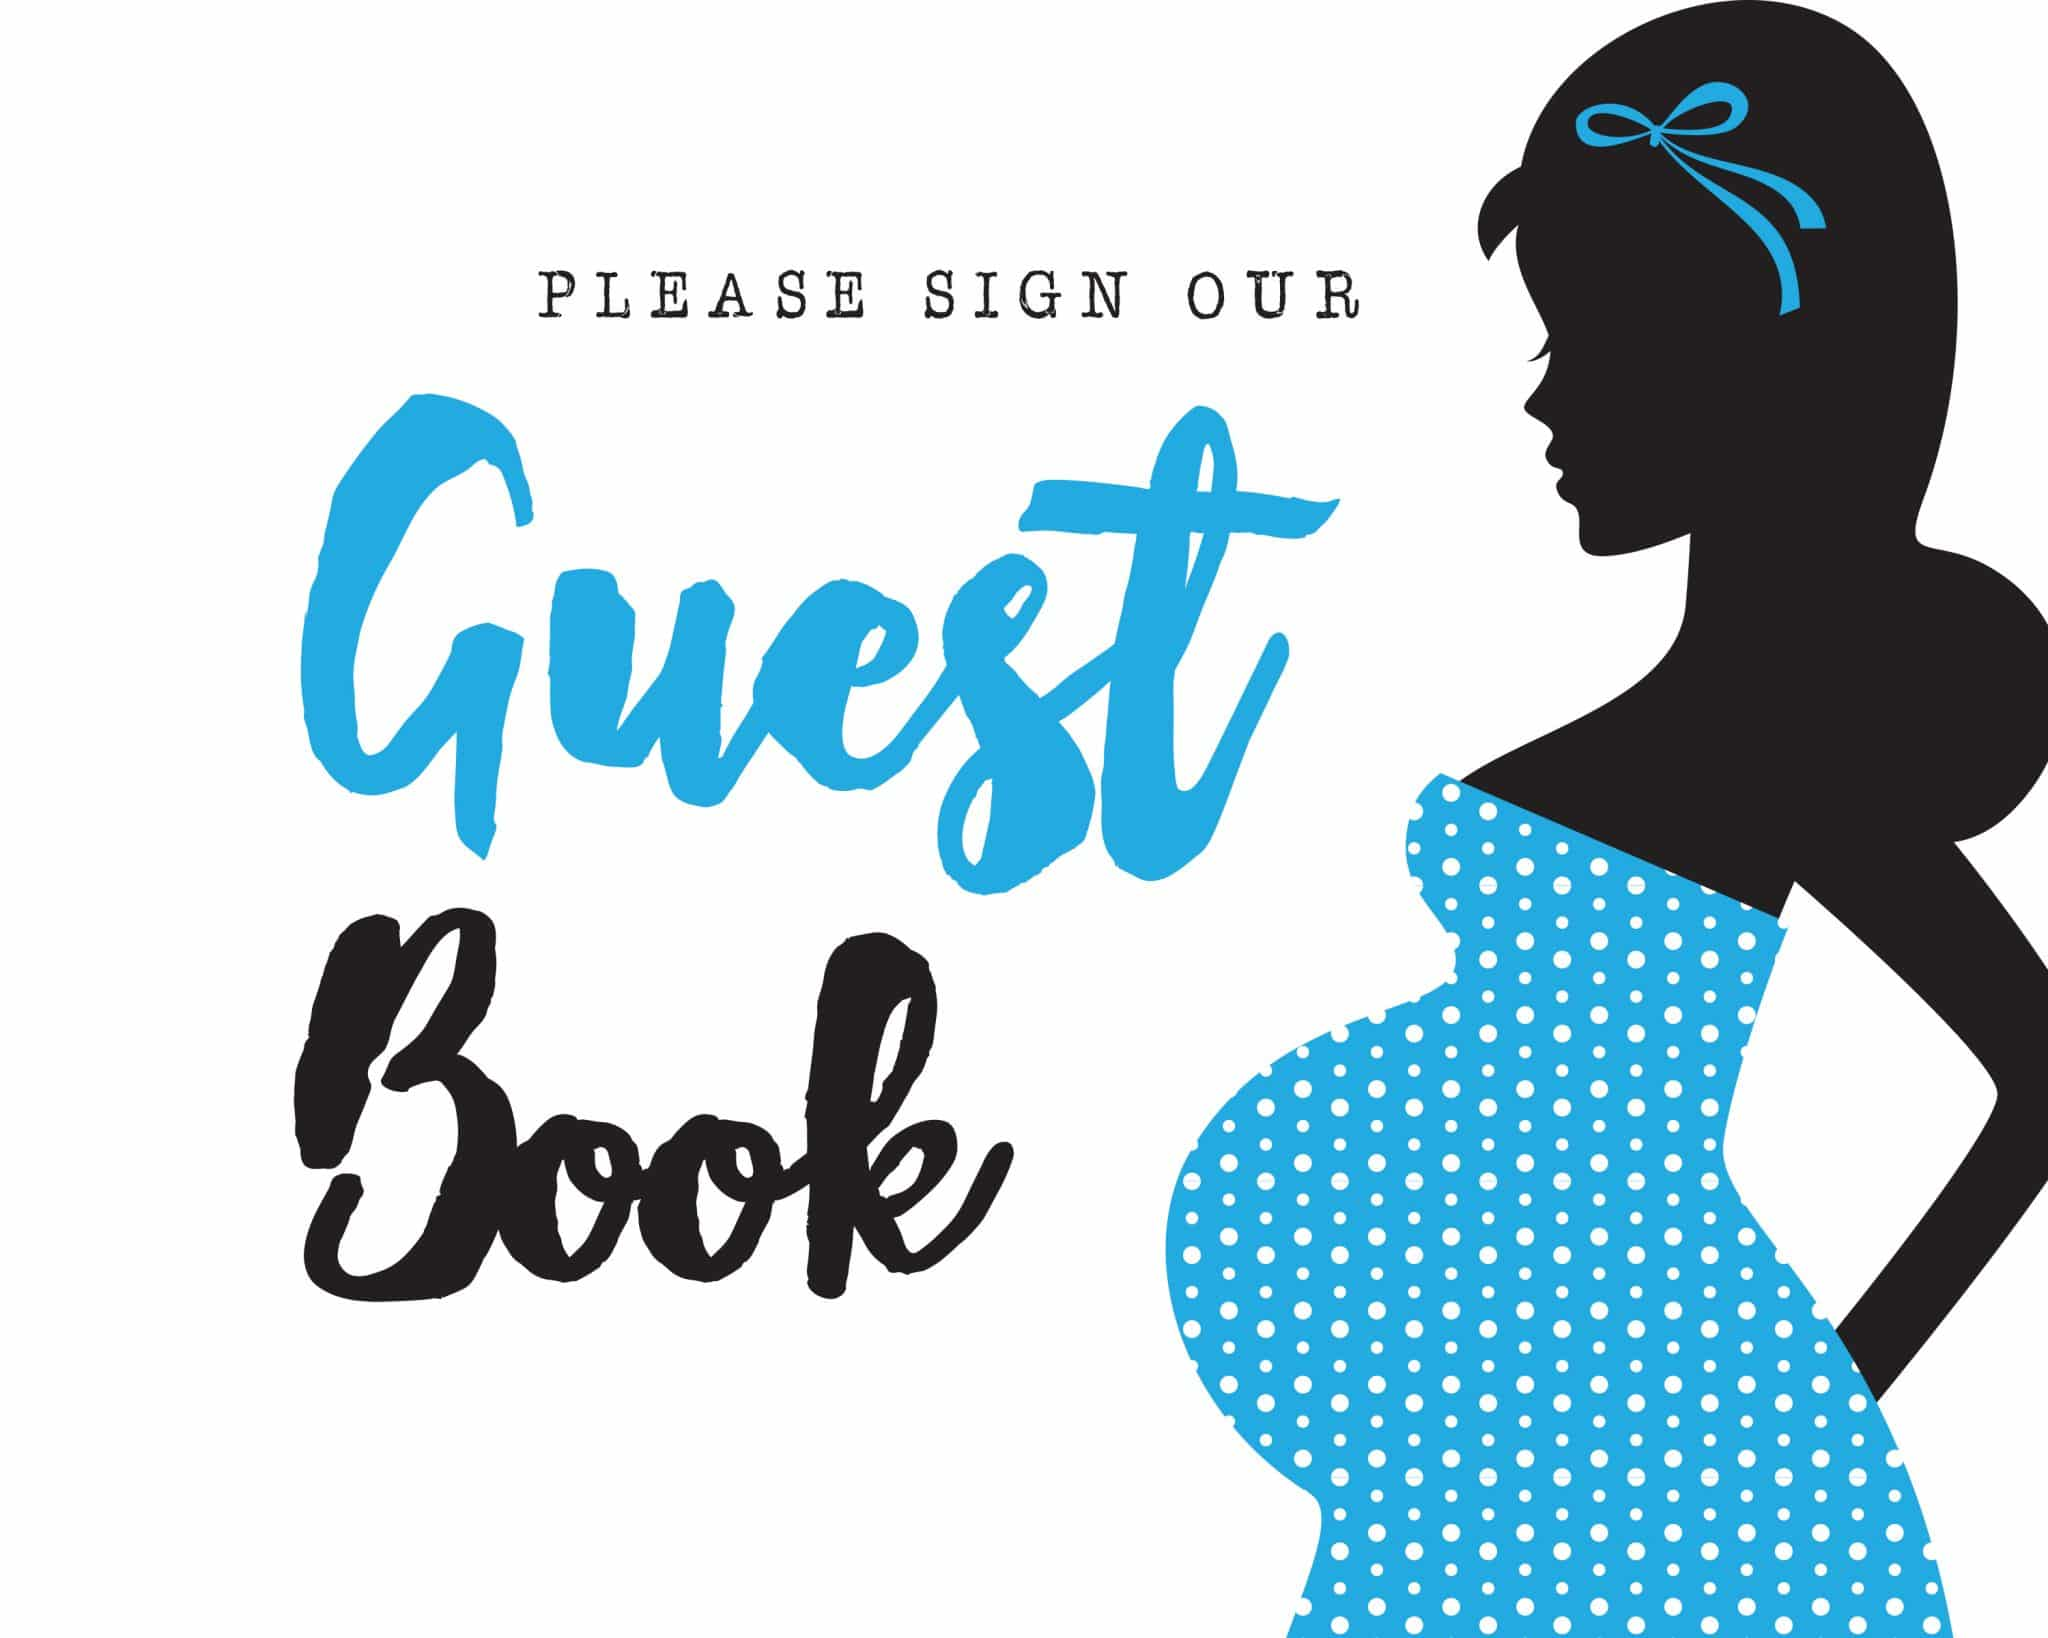 Please sign our guestbook its a boy theme